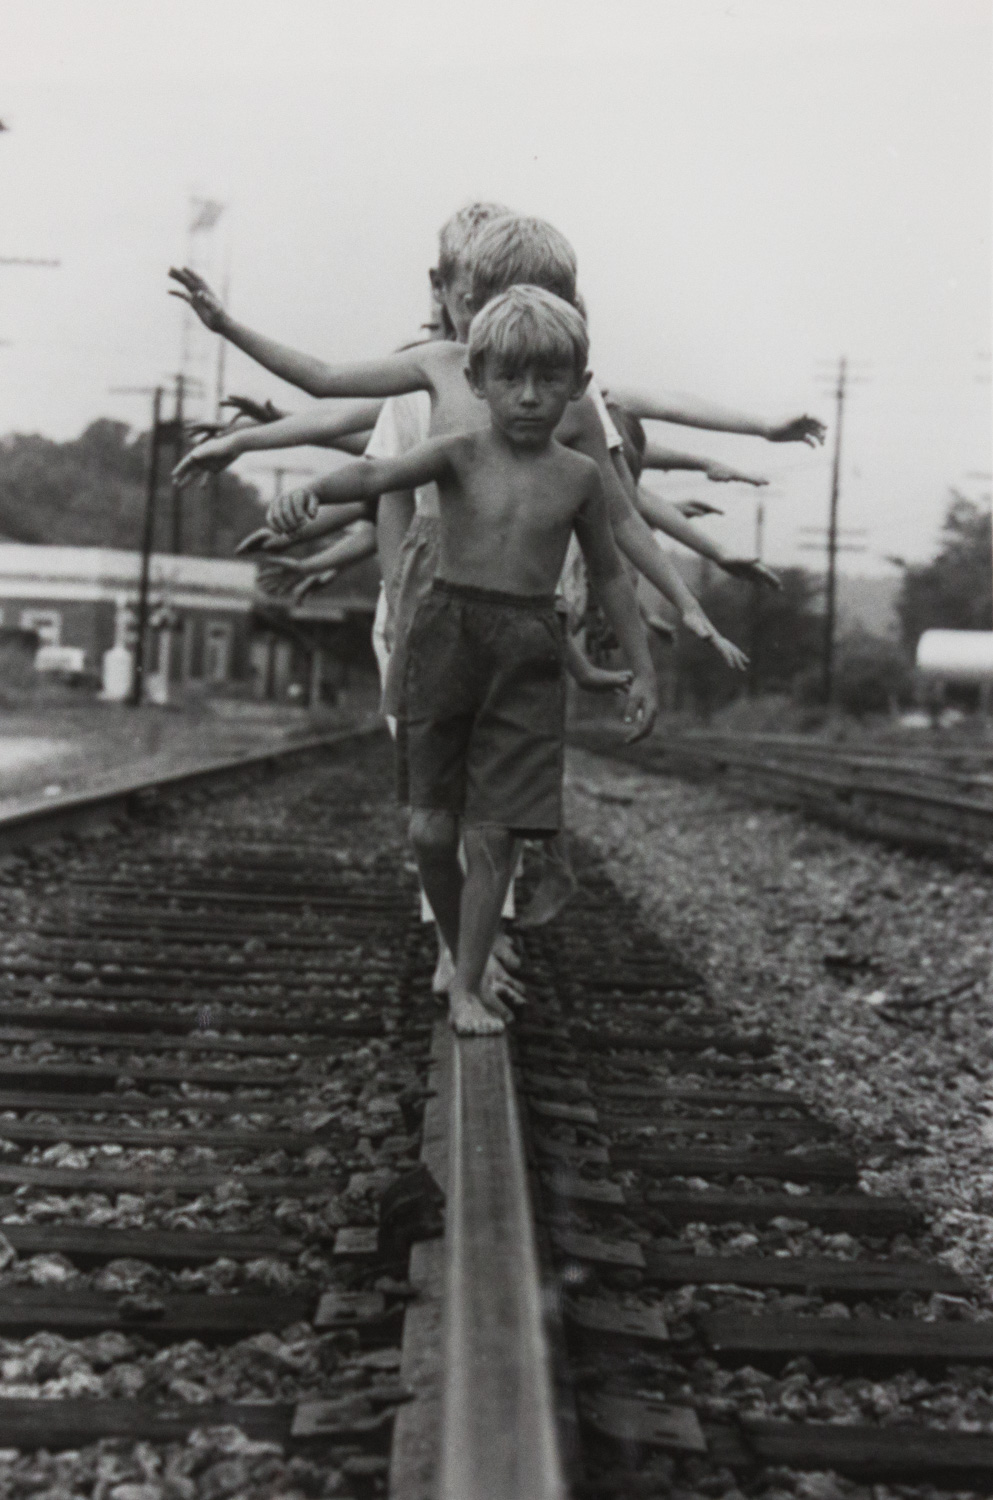 Anniston Train Station 4th St. by Ken Elkins, Silver Gelatin Print